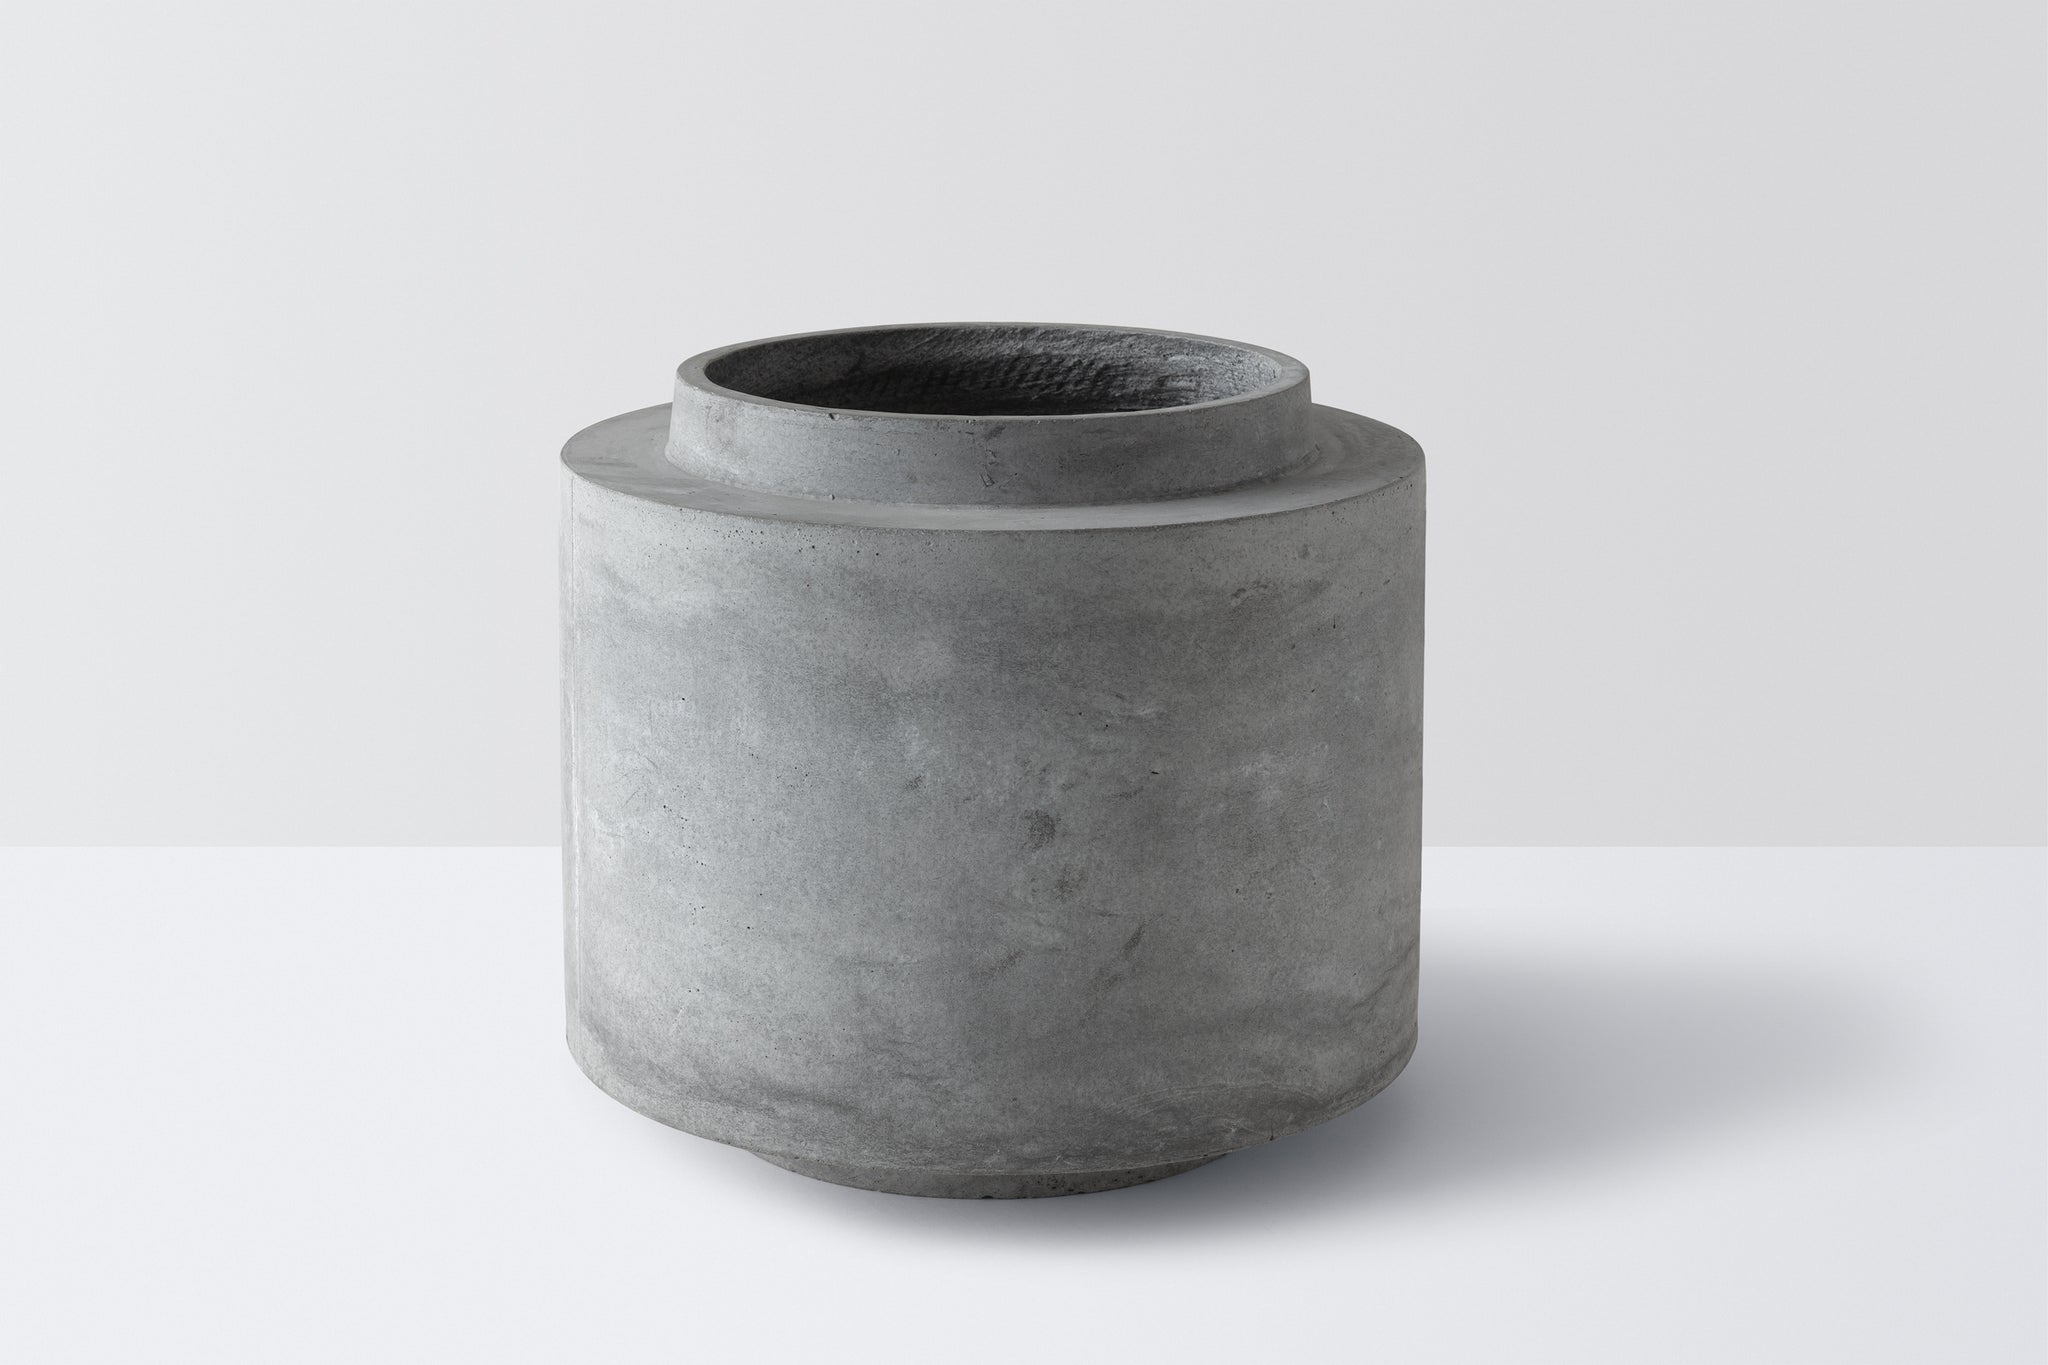 XL Pot with Stand - Concrete